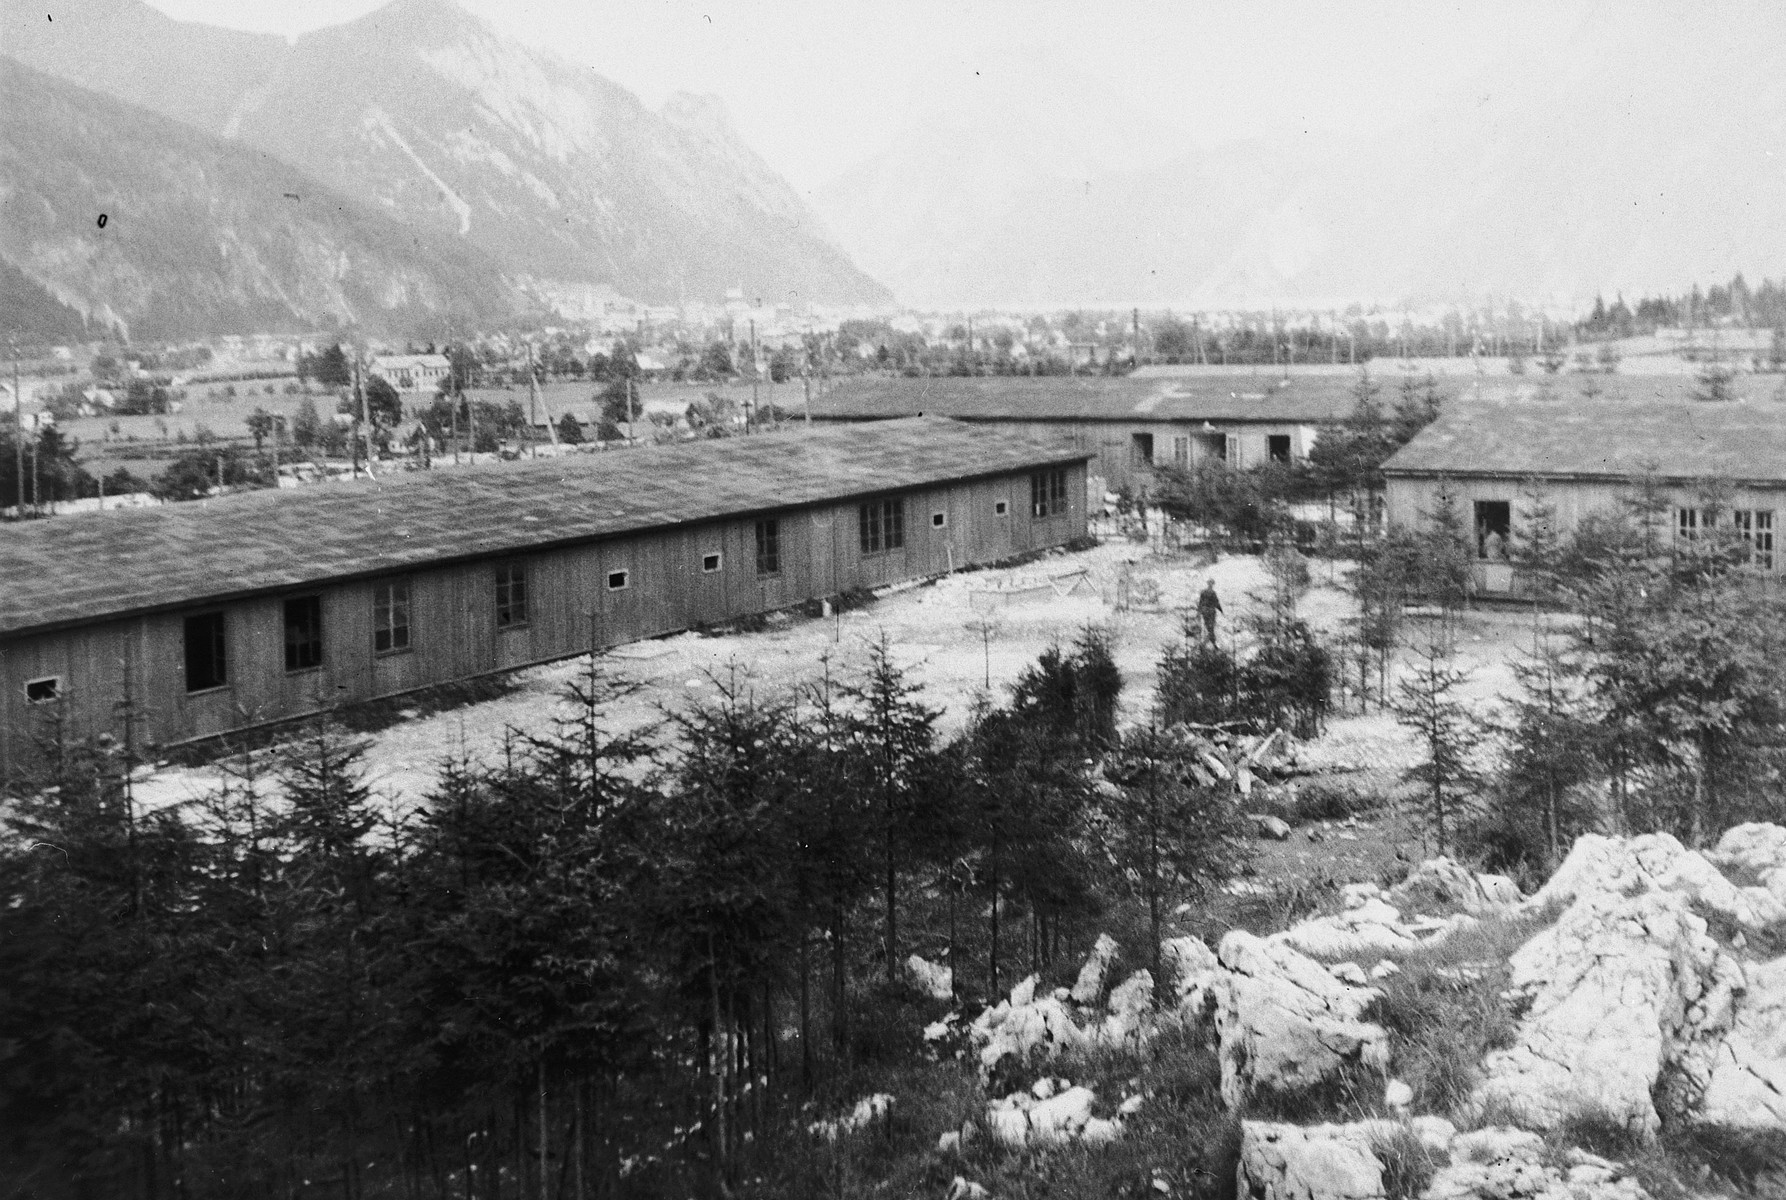 """Exterior view of the barracks of the Ebensee subcamp of Mauthausen.  The original caption reads: """"View of the barracks where the displaced persons lived.  They were allowed only body space and living three high."""""""